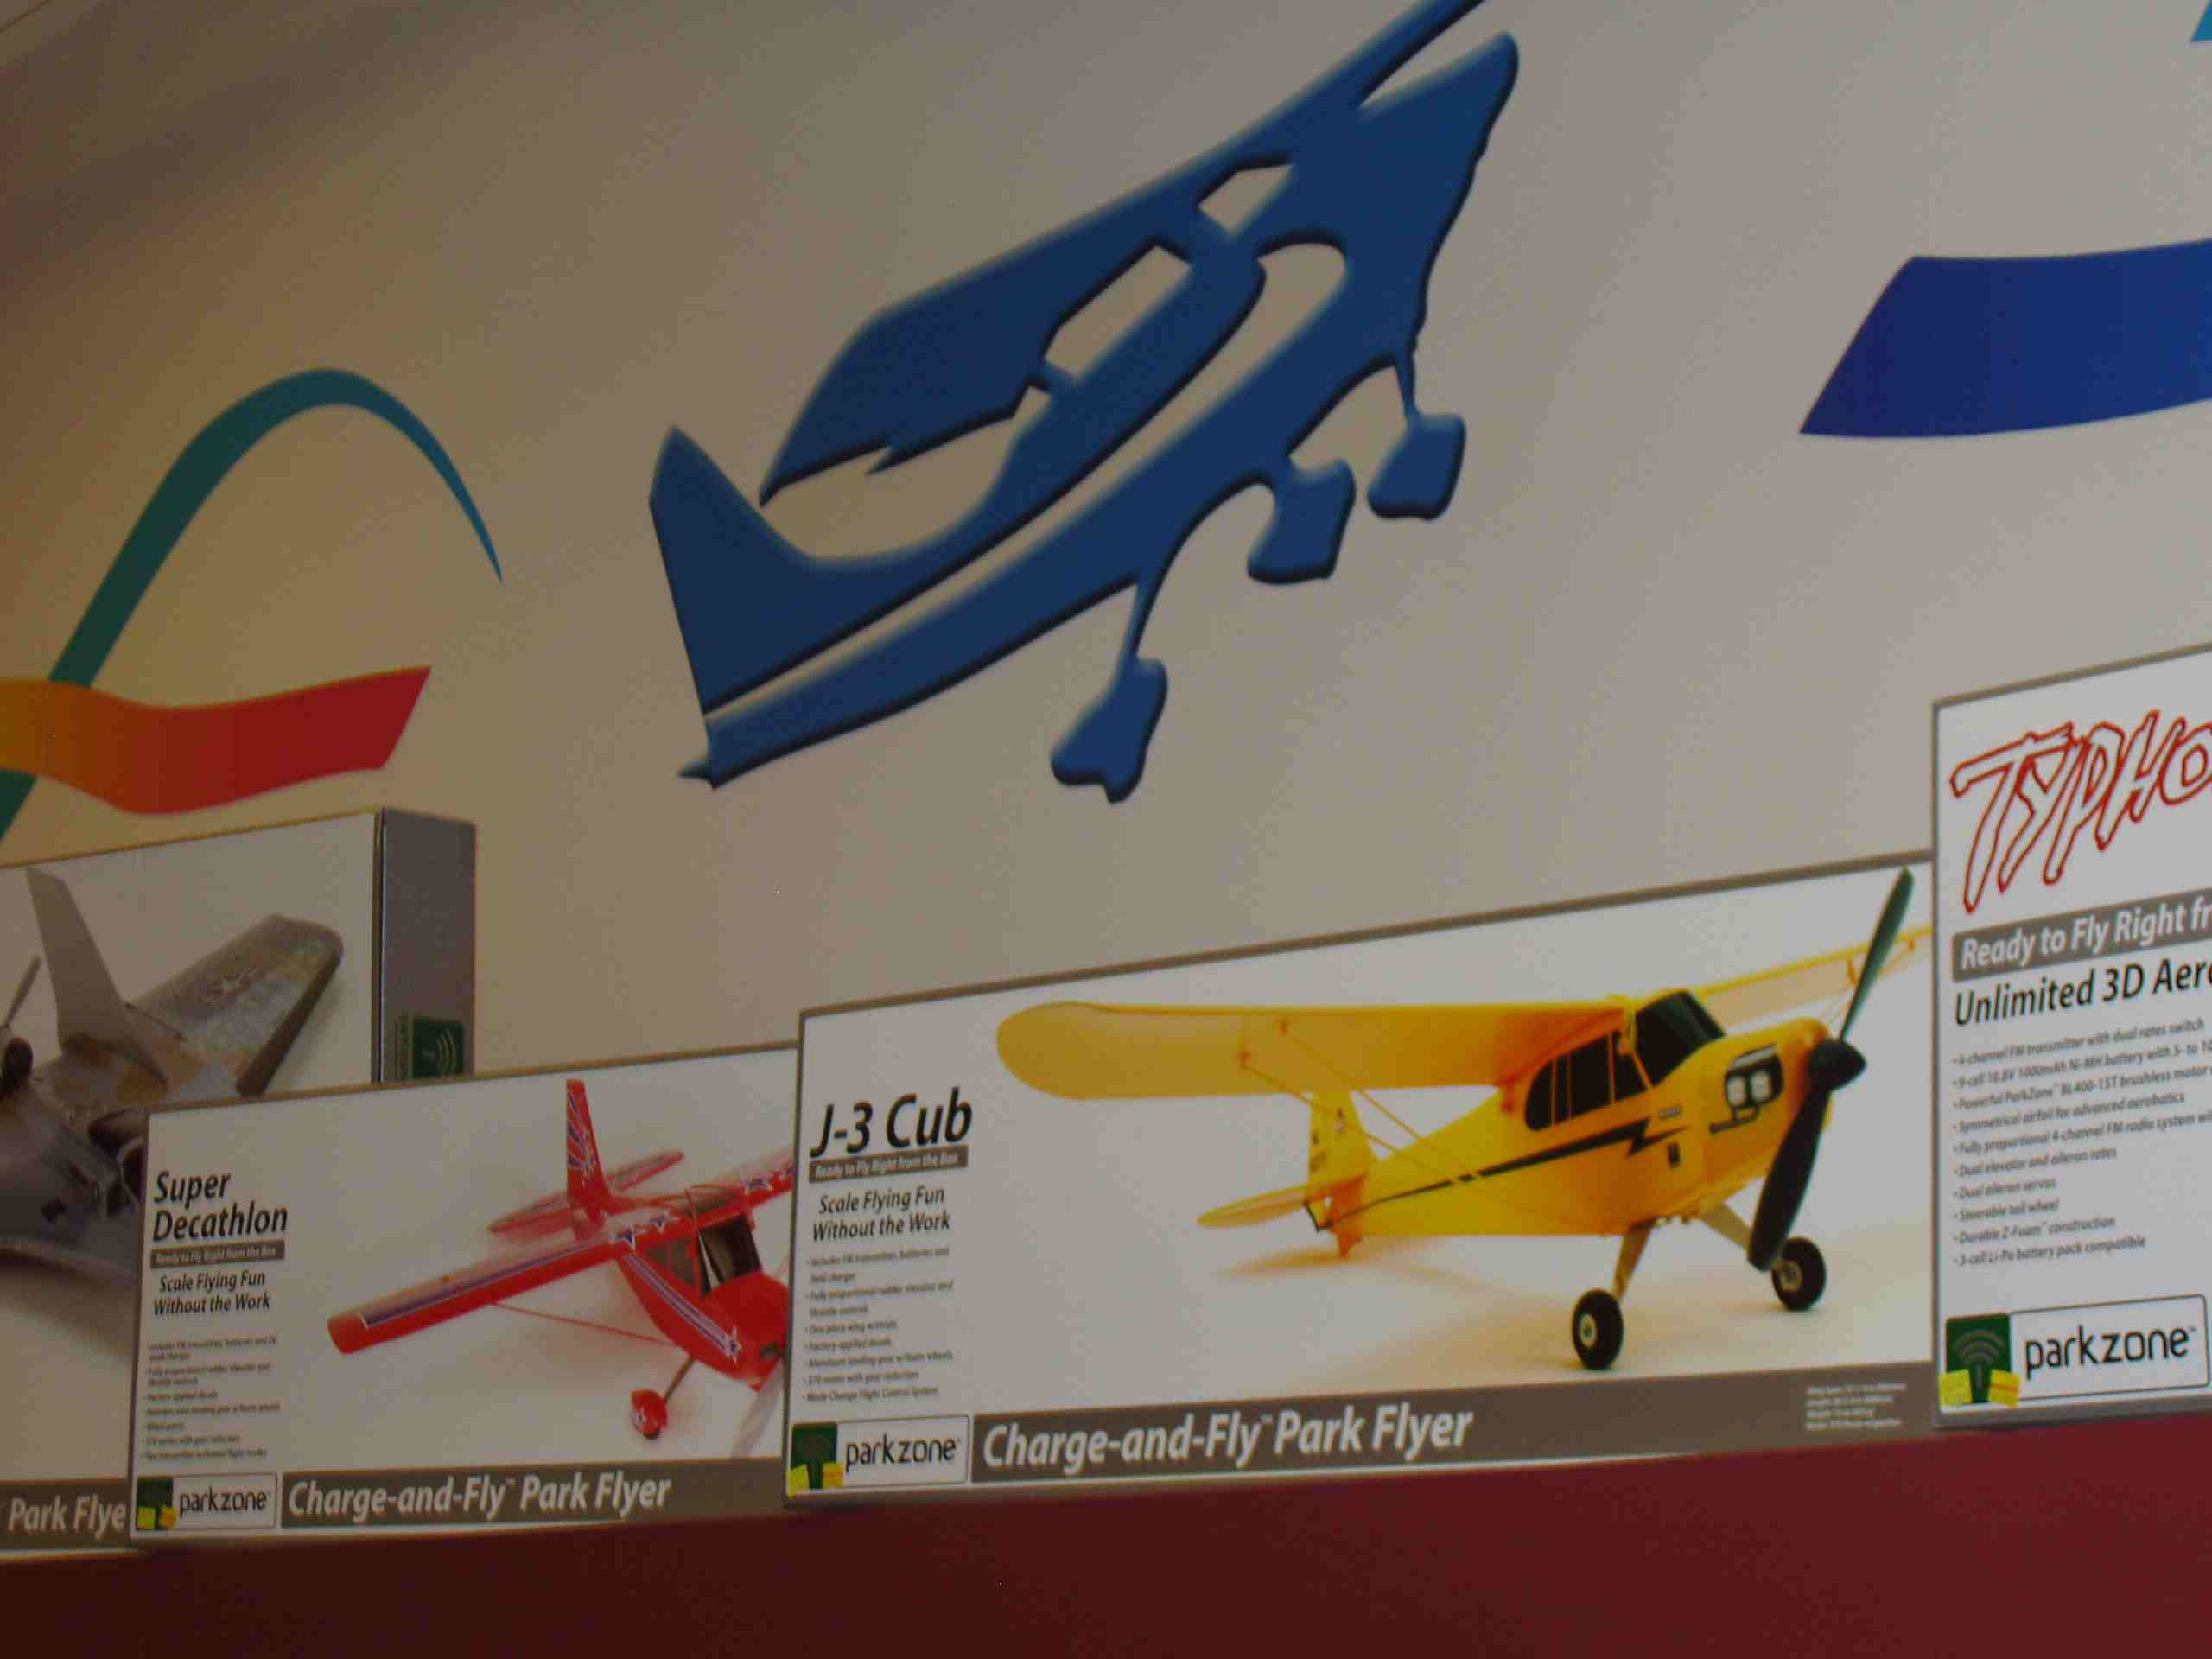 R/c airplanes image